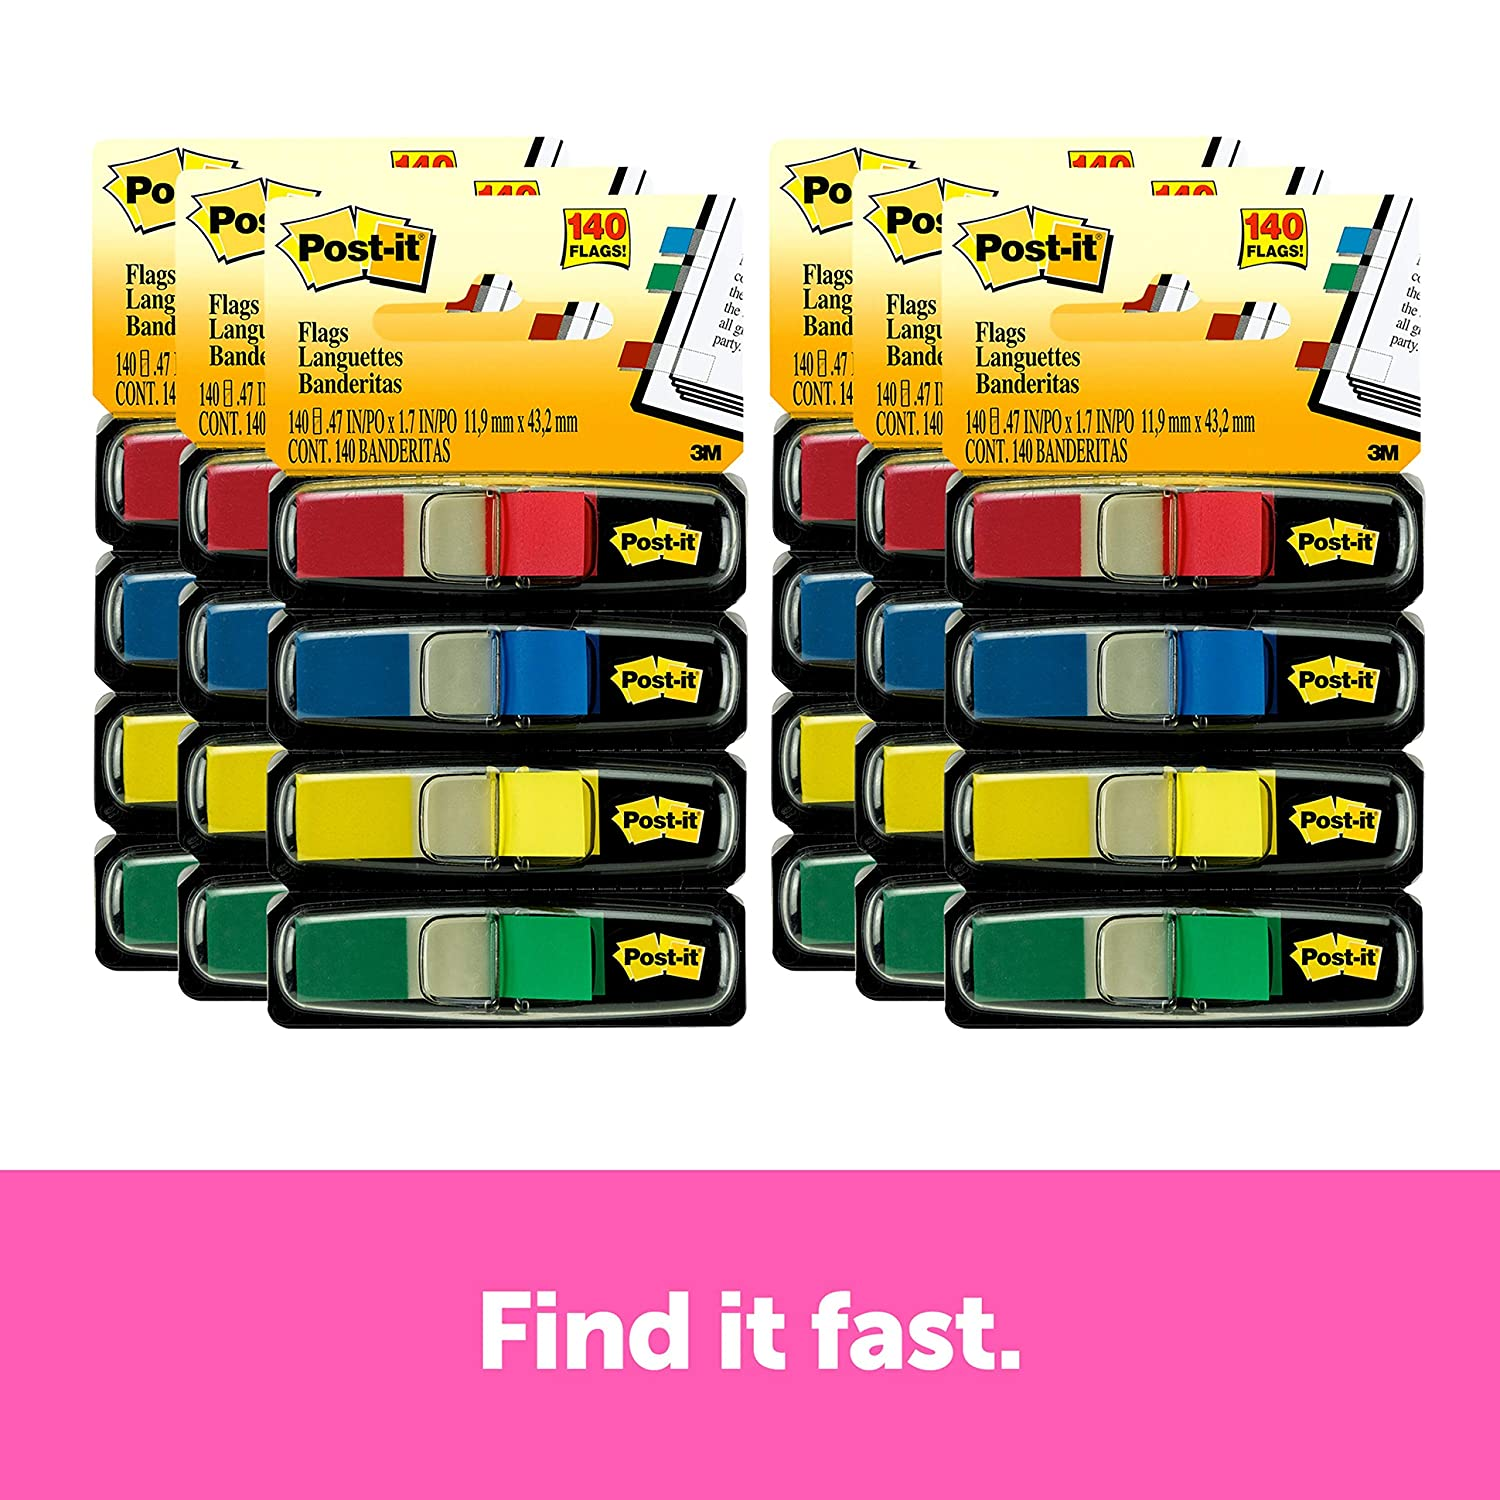 Post-it Flags Assorted Primary, Four Colors, 35 Flags Each Color, Red, Blue, Green and Yellow - 140 Total Flags Per Pack. 6 Packs Included. Flags are .47 in x 1.7 in (683-4-6Pk)